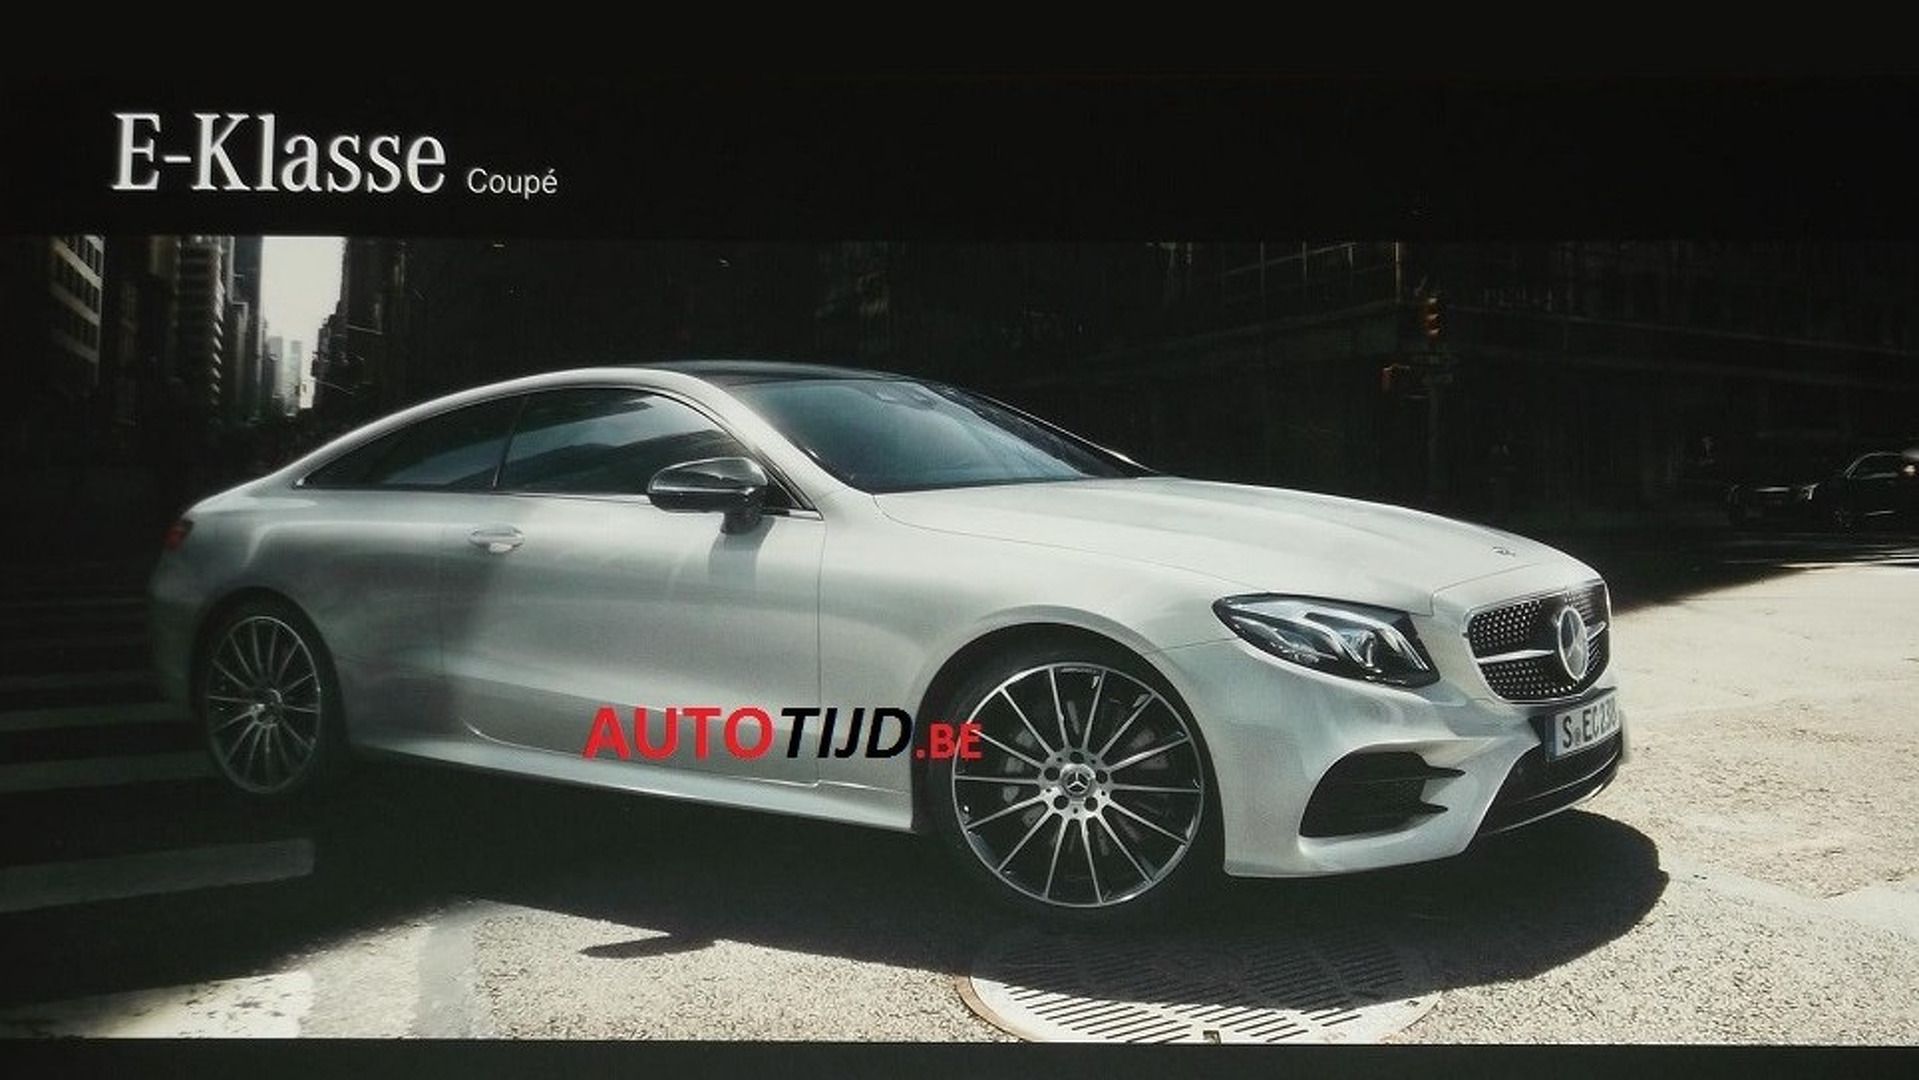 2018 mercedes-benz e-class coupe leaked ahead of december 14 reveal